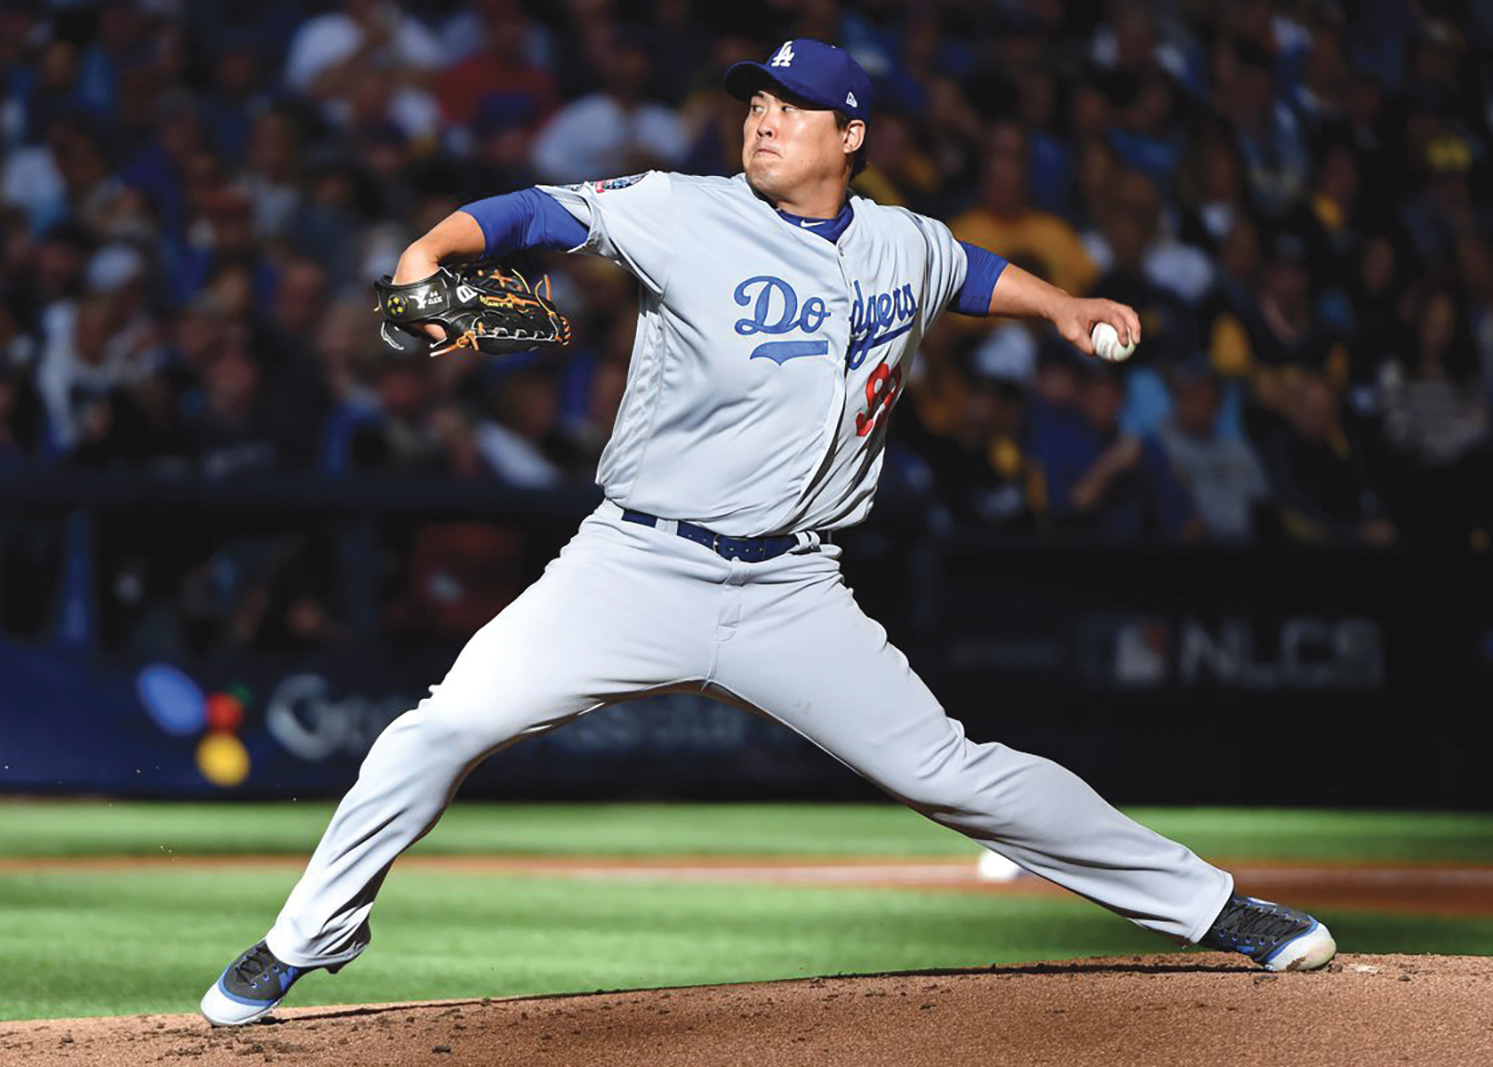 Hyun-Jin Ryu pitched 6 and 2/3 innings in the Dodger opener. (courtesy photo)